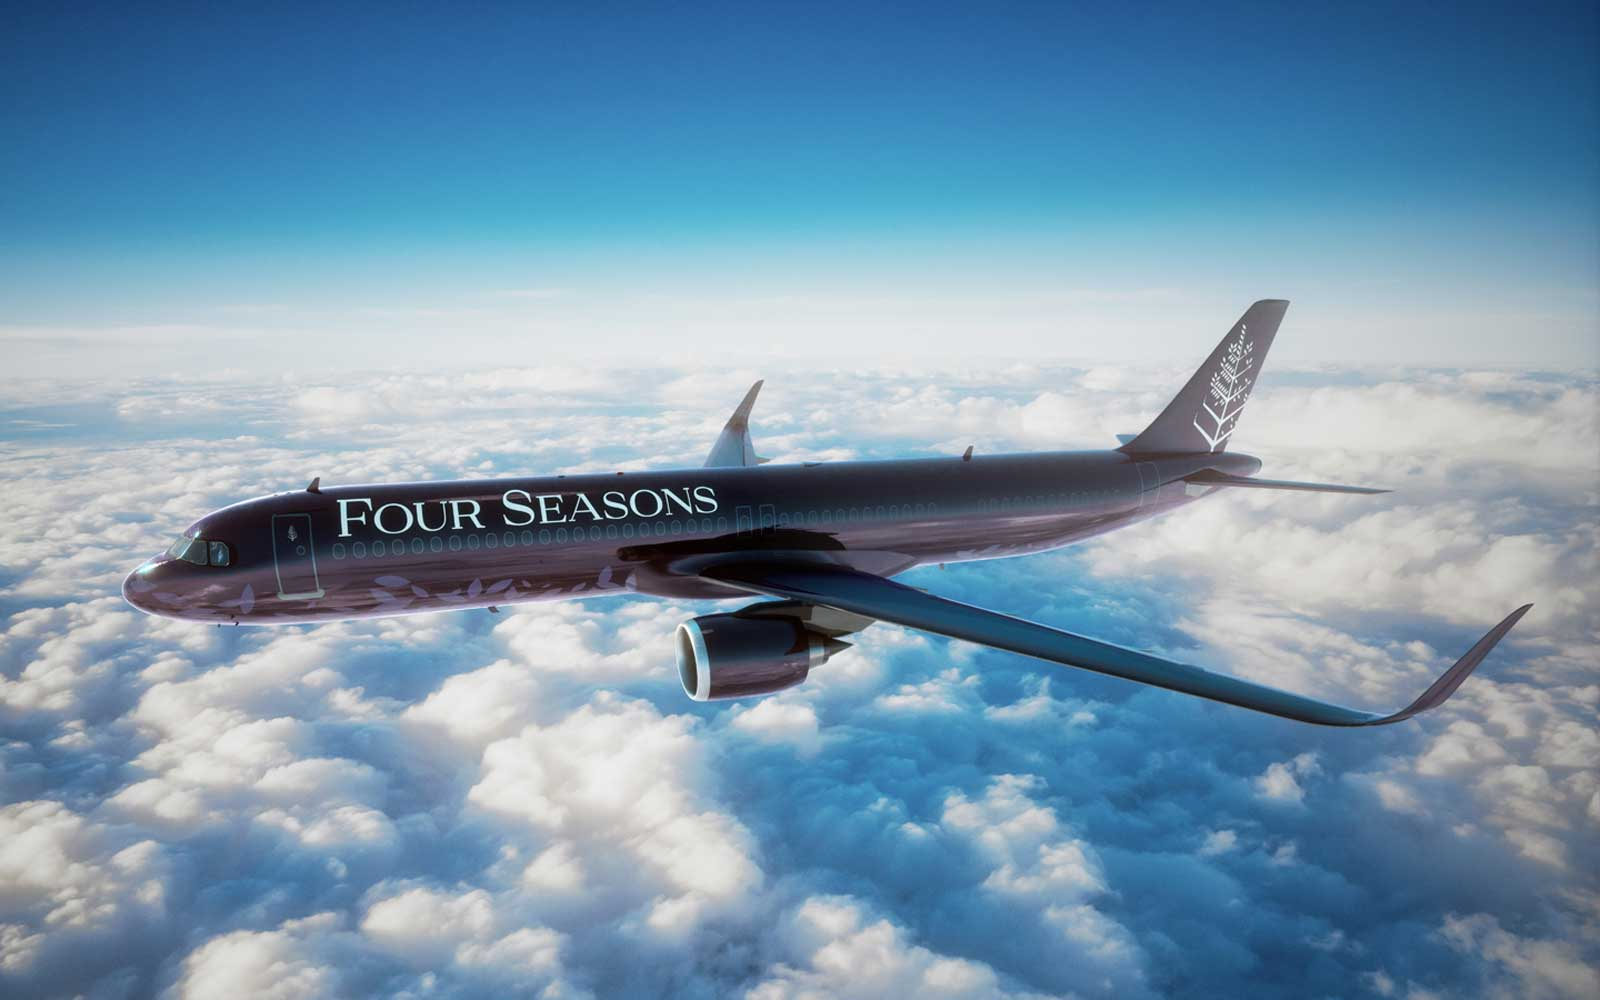 Four Seasons Plane